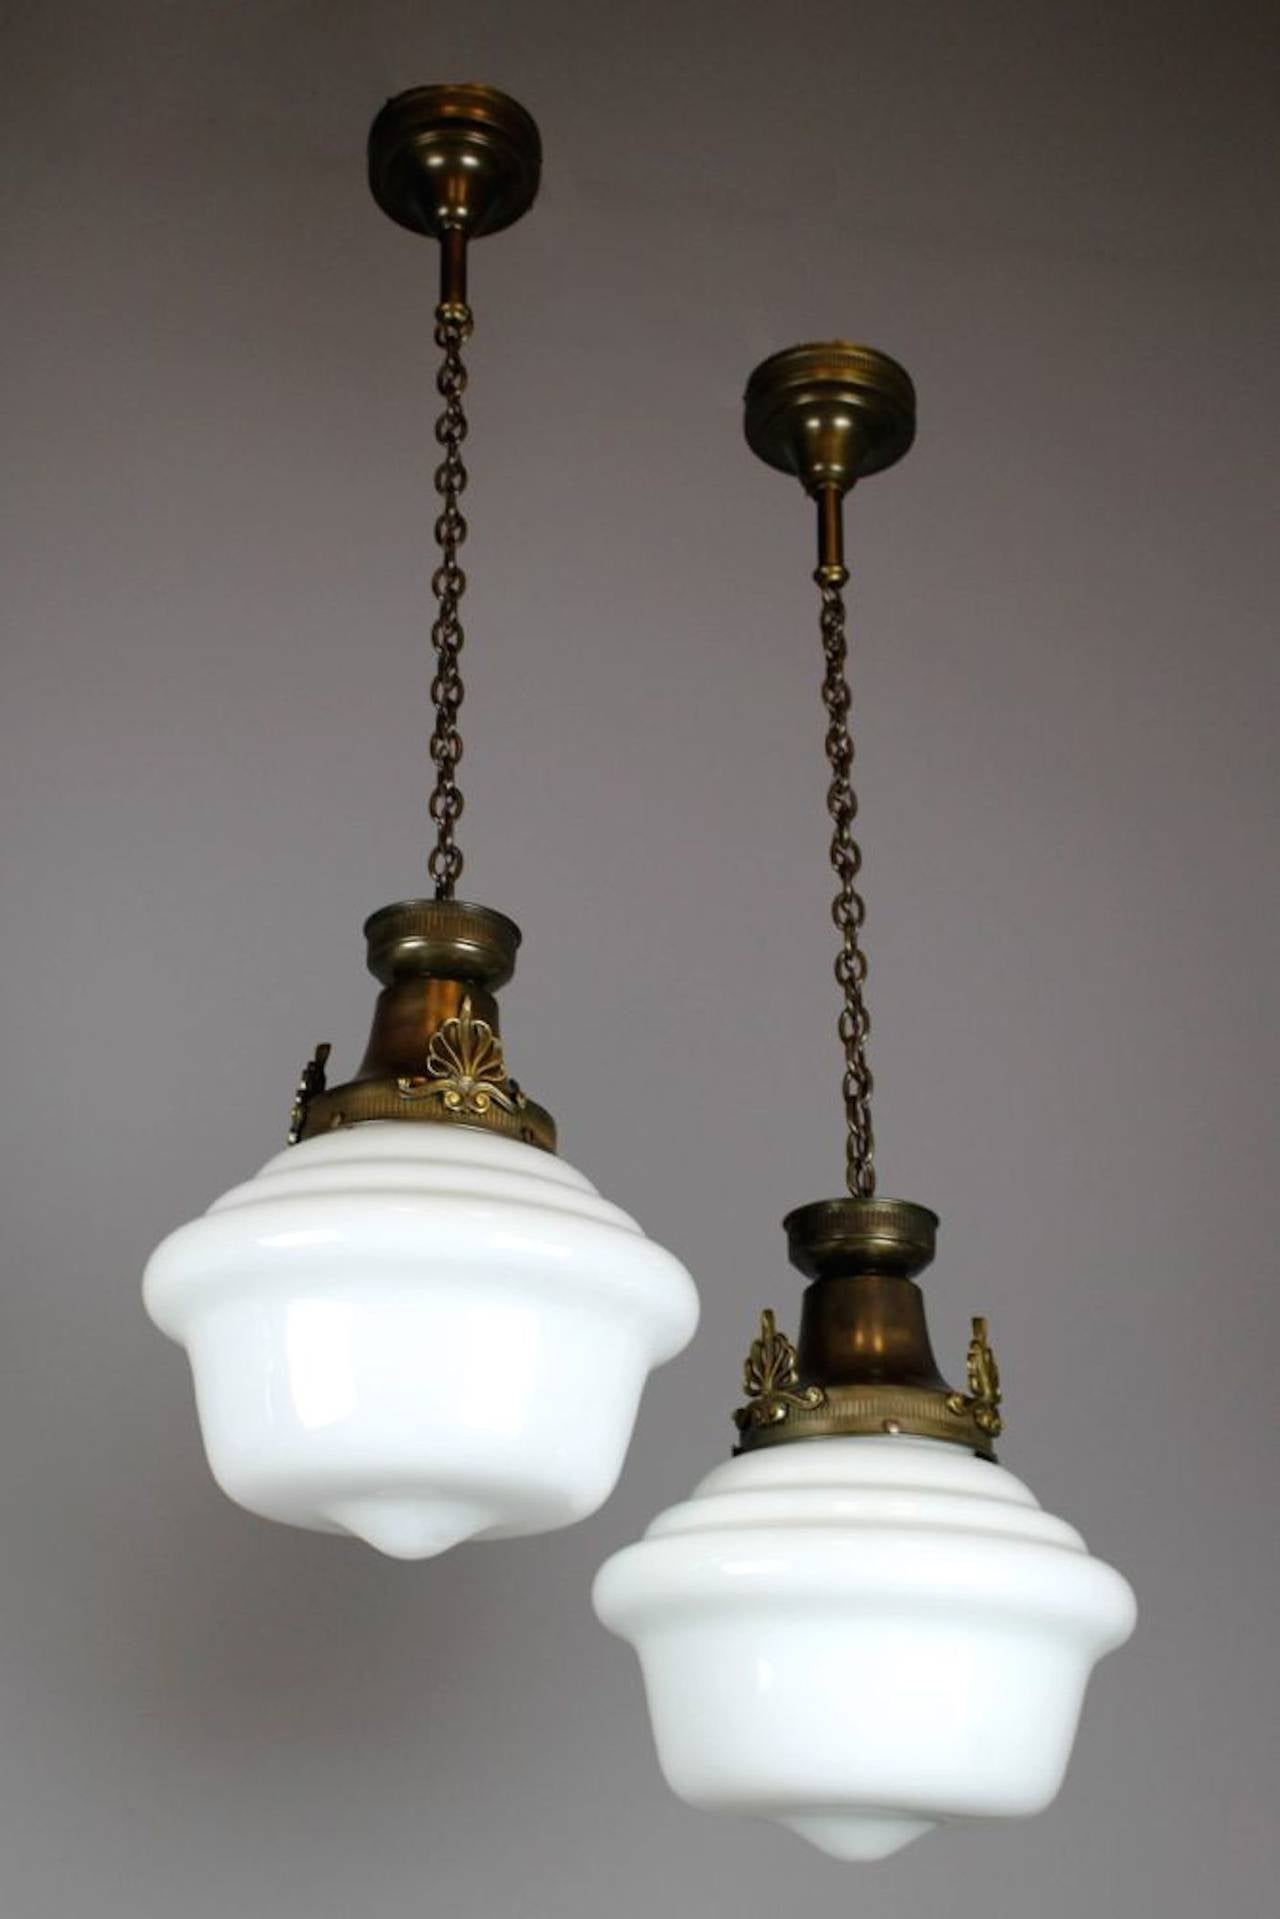 Single Pendant Schoolhouse Fixture At 1stdibs